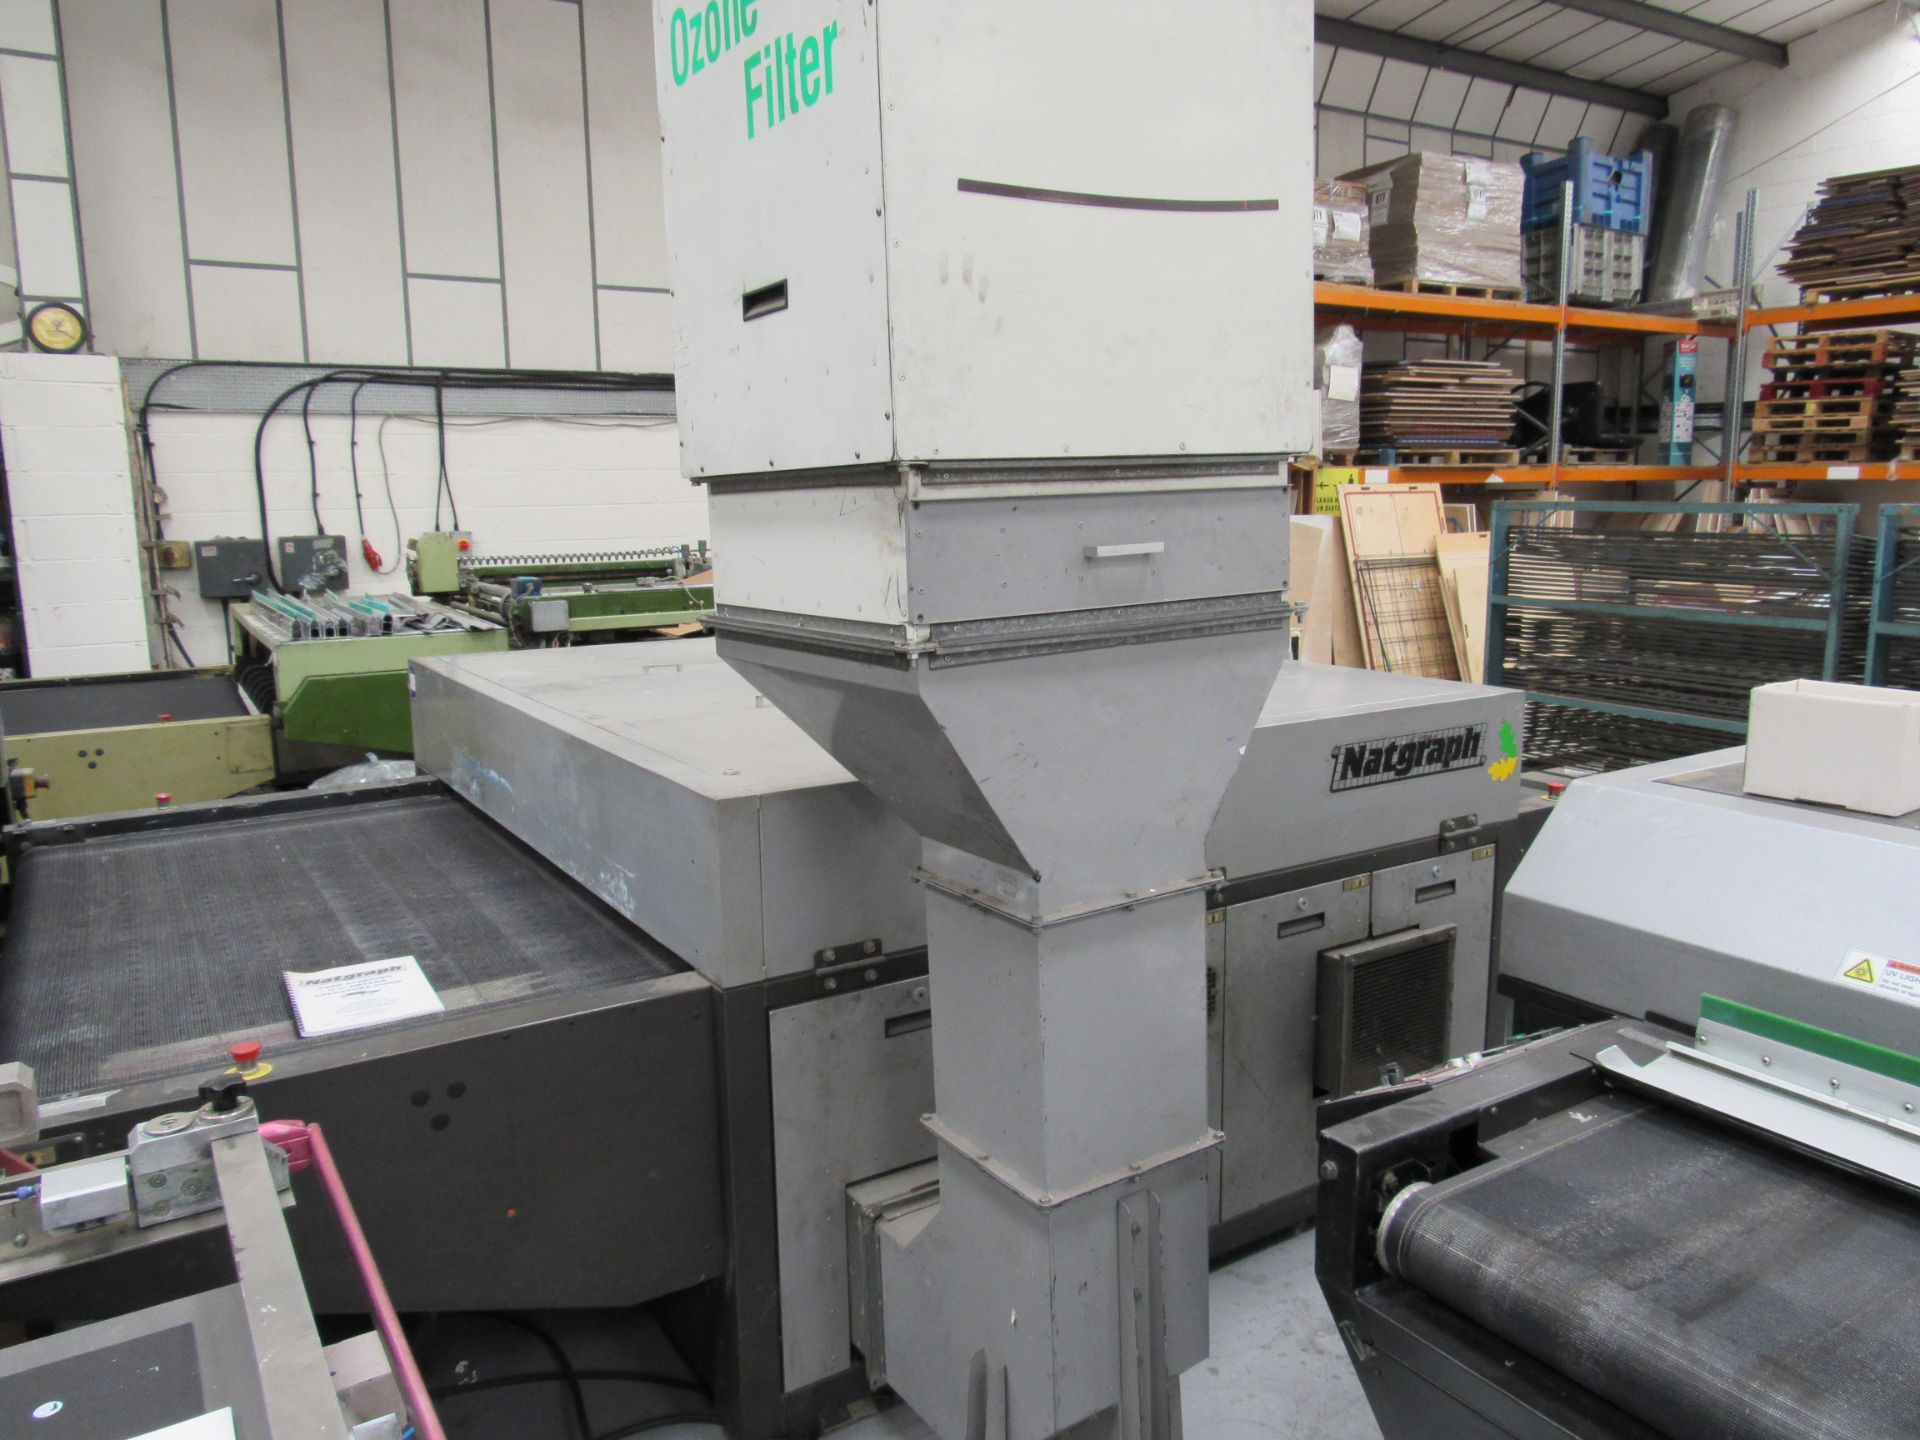 Serfast Screen Printer with Natgraph 170-02.01 UV Dryer, Serial Number 337-02-04, 2002 - Image 9 of 13